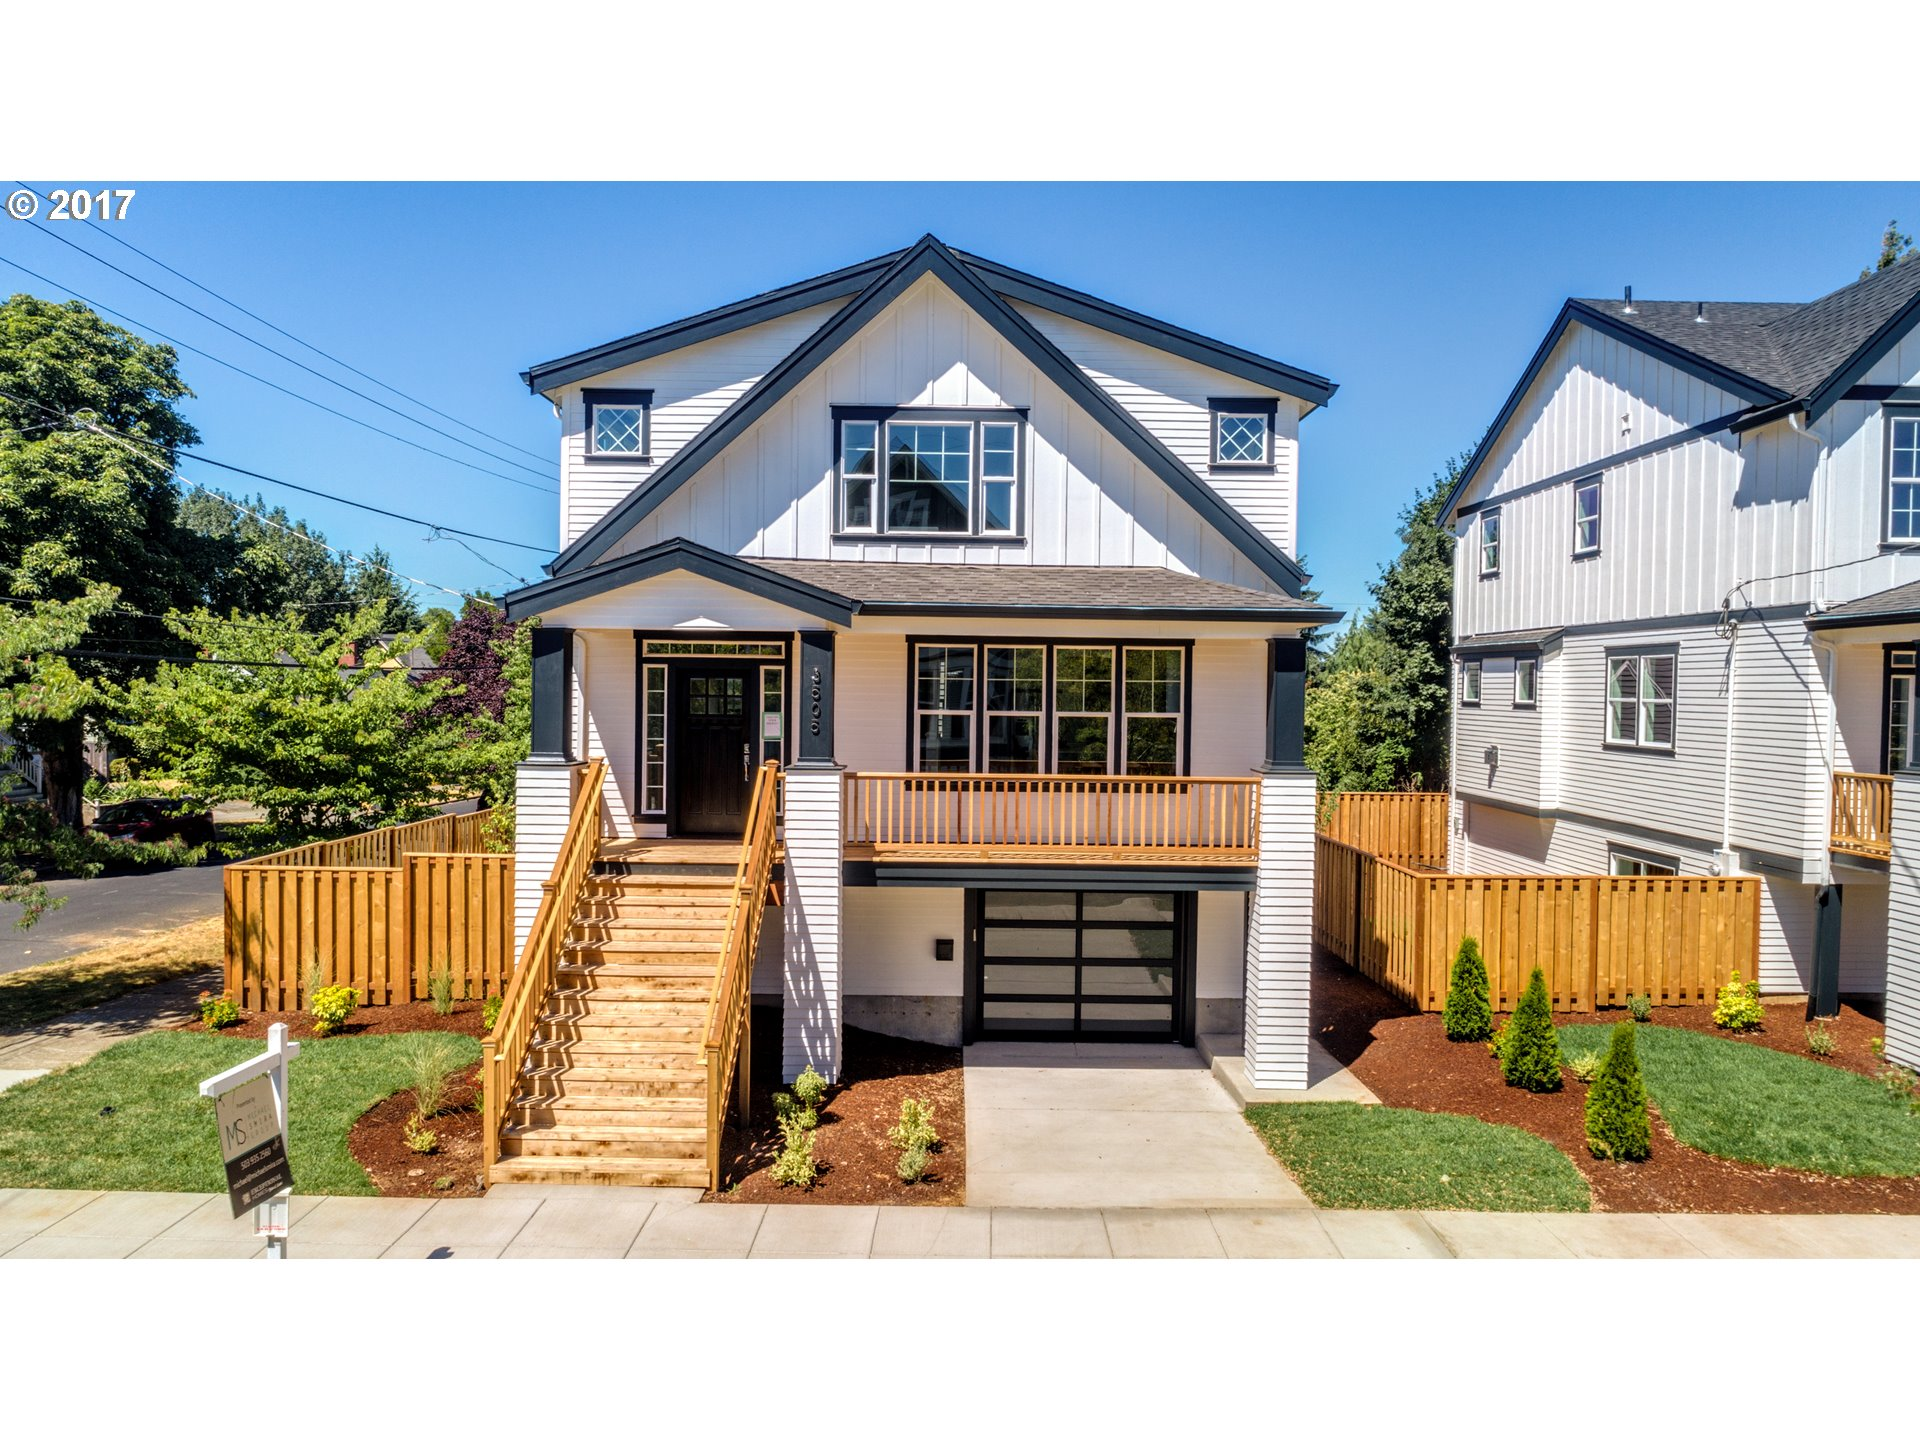 3505 Ne Webster St, Portland, OR 97211